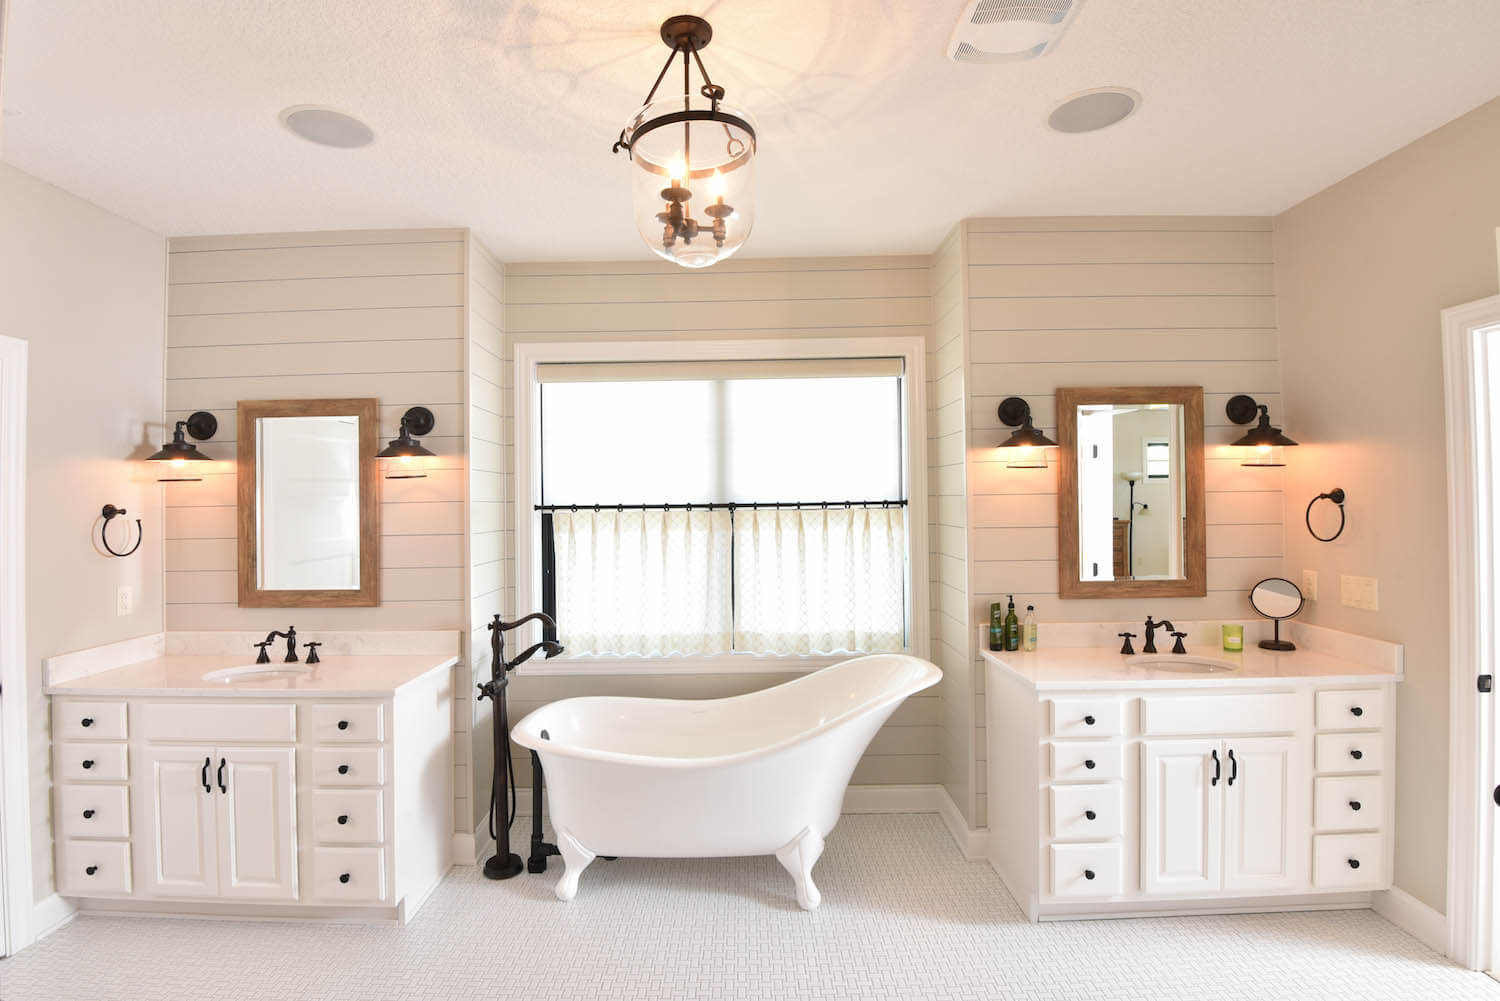 Stunning Bathroom with Clawfoot Tub